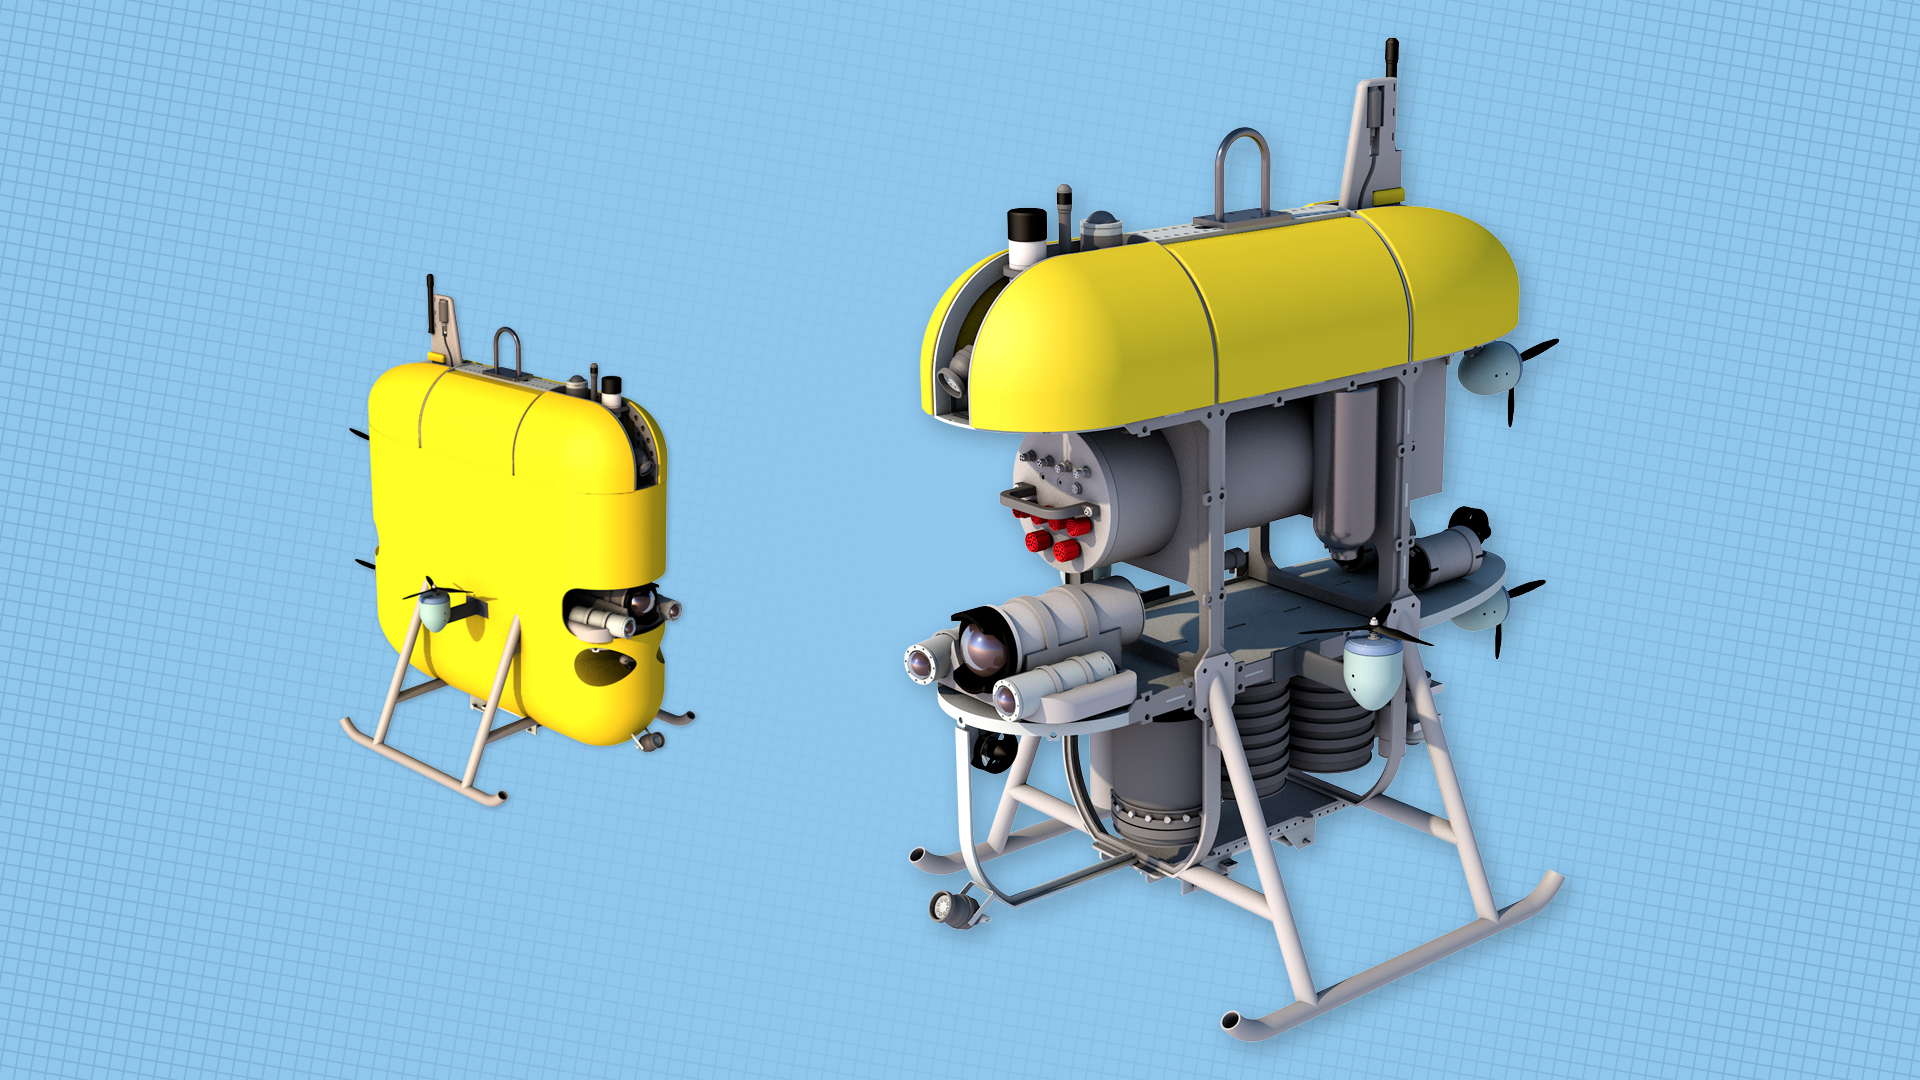 Mesobot, Follow that Jellyfish! New robot will track animals in the ocean twilight zone